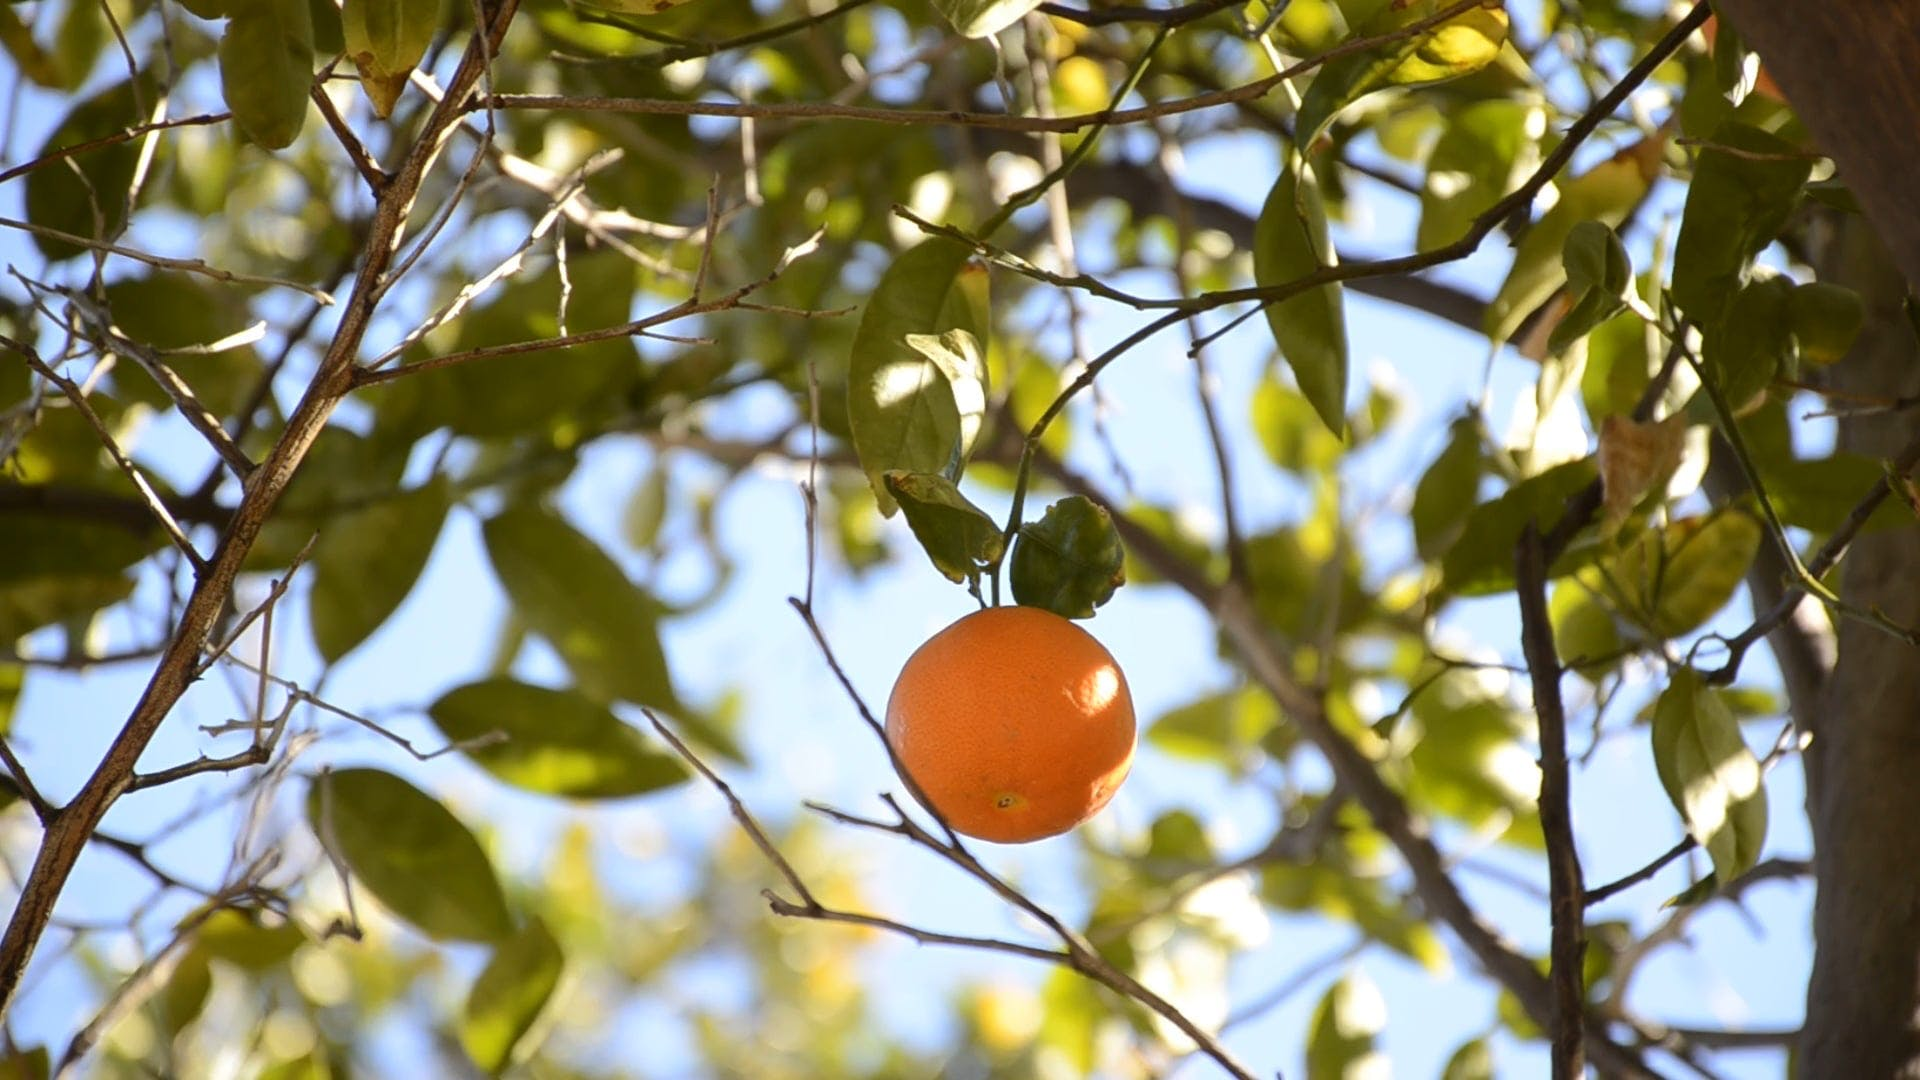 Fruit Hanging On A Branch